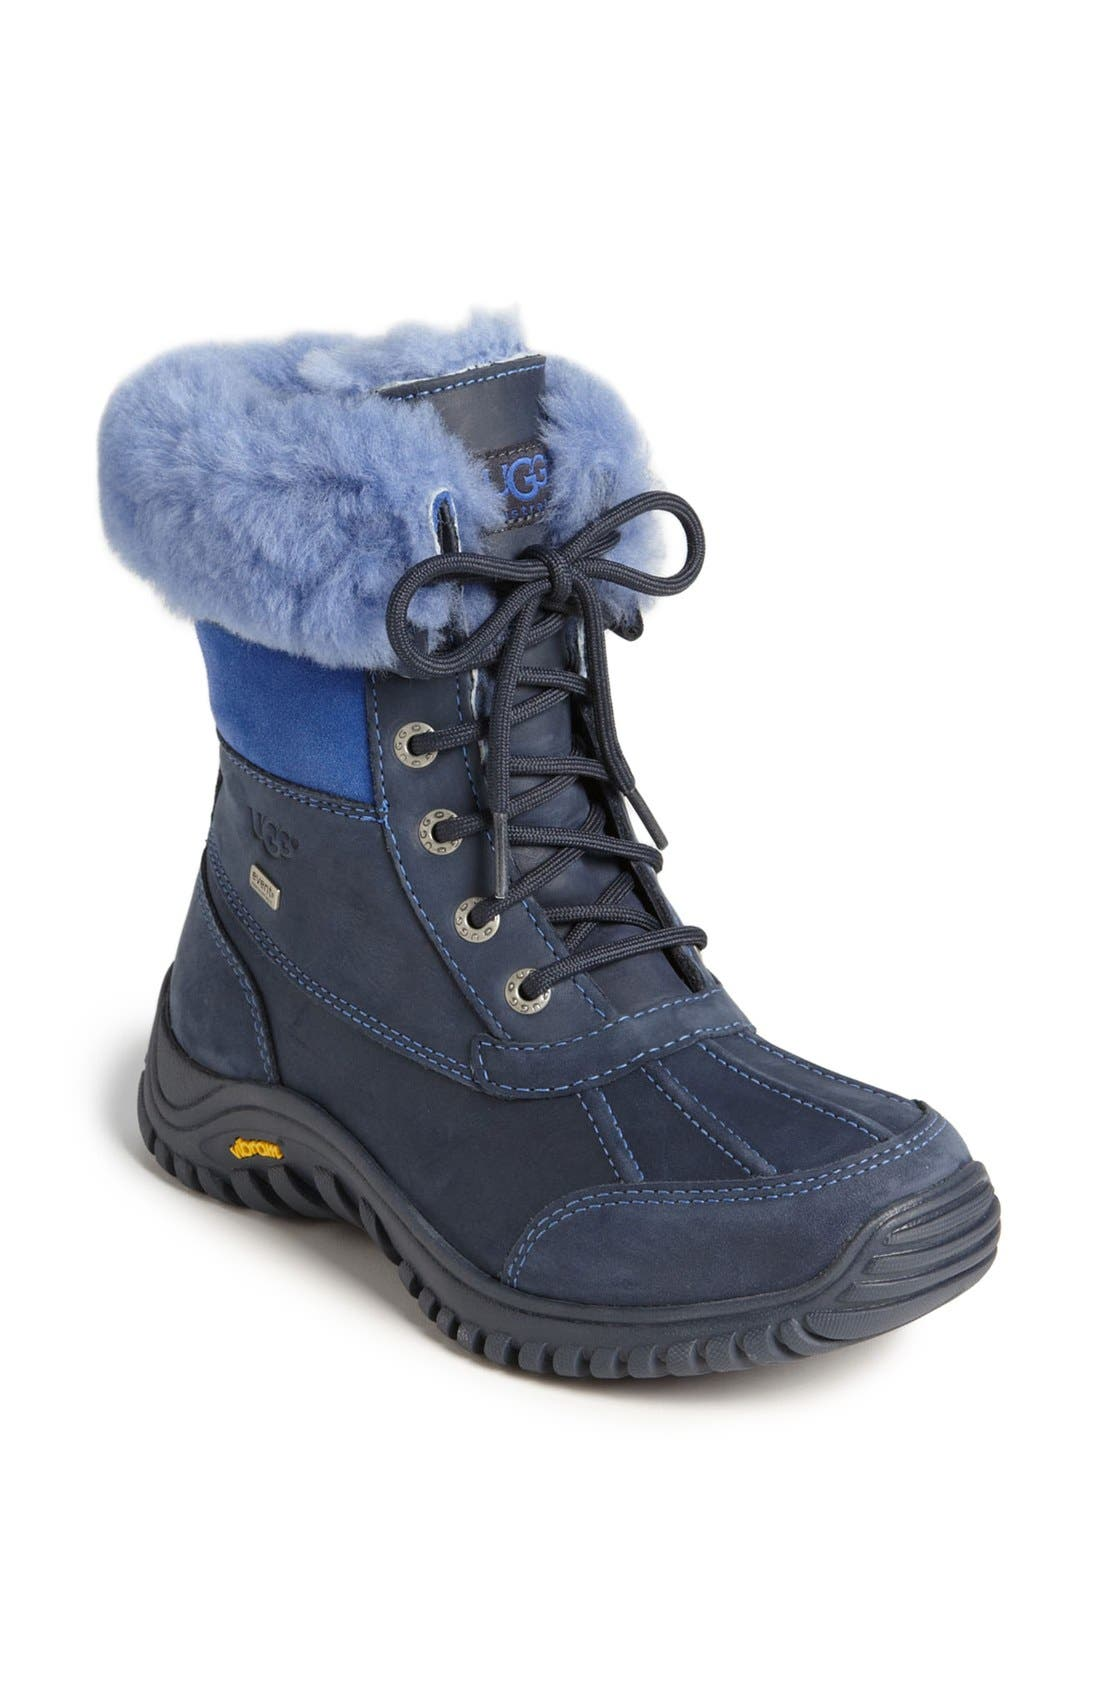 Adirondack II Waterproof Boot,                             Main thumbnail 15, color,